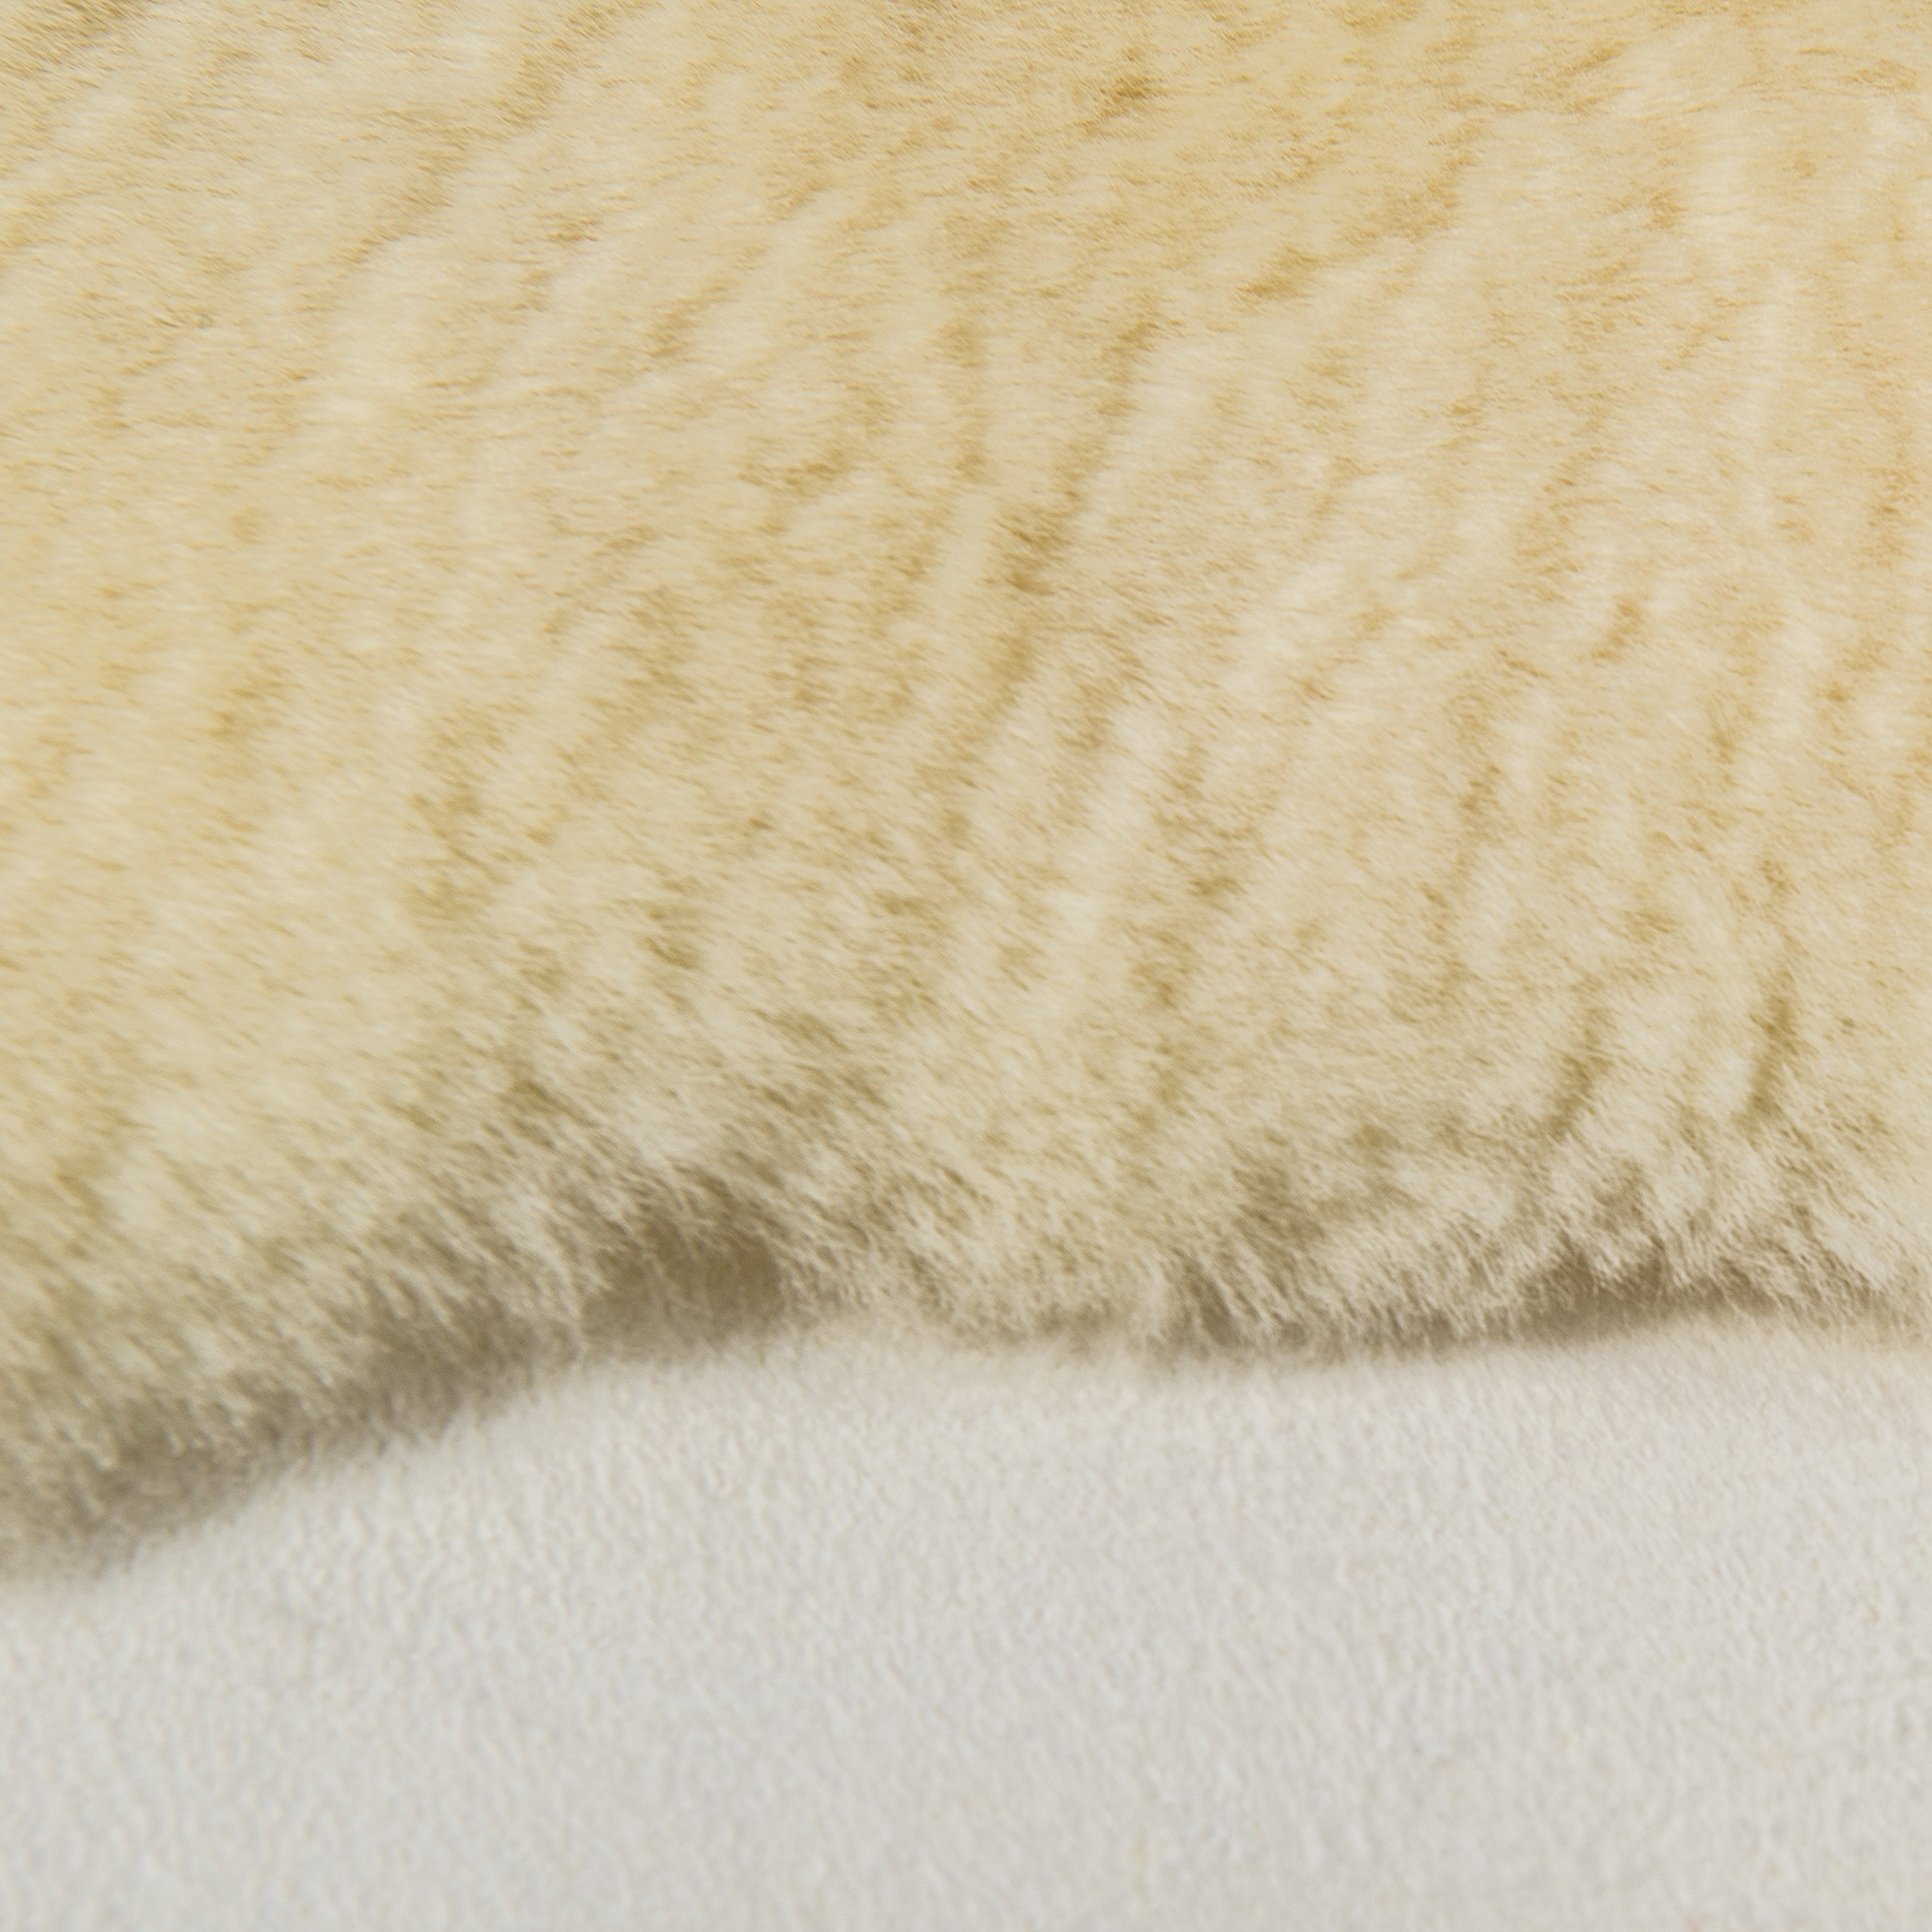 DMI Natural Sheepskin Wool Comfort Mattress Bed Pad Bed Mat, Washable, 8 to 9 Square Feet, Beige by Briggs (Image #5)